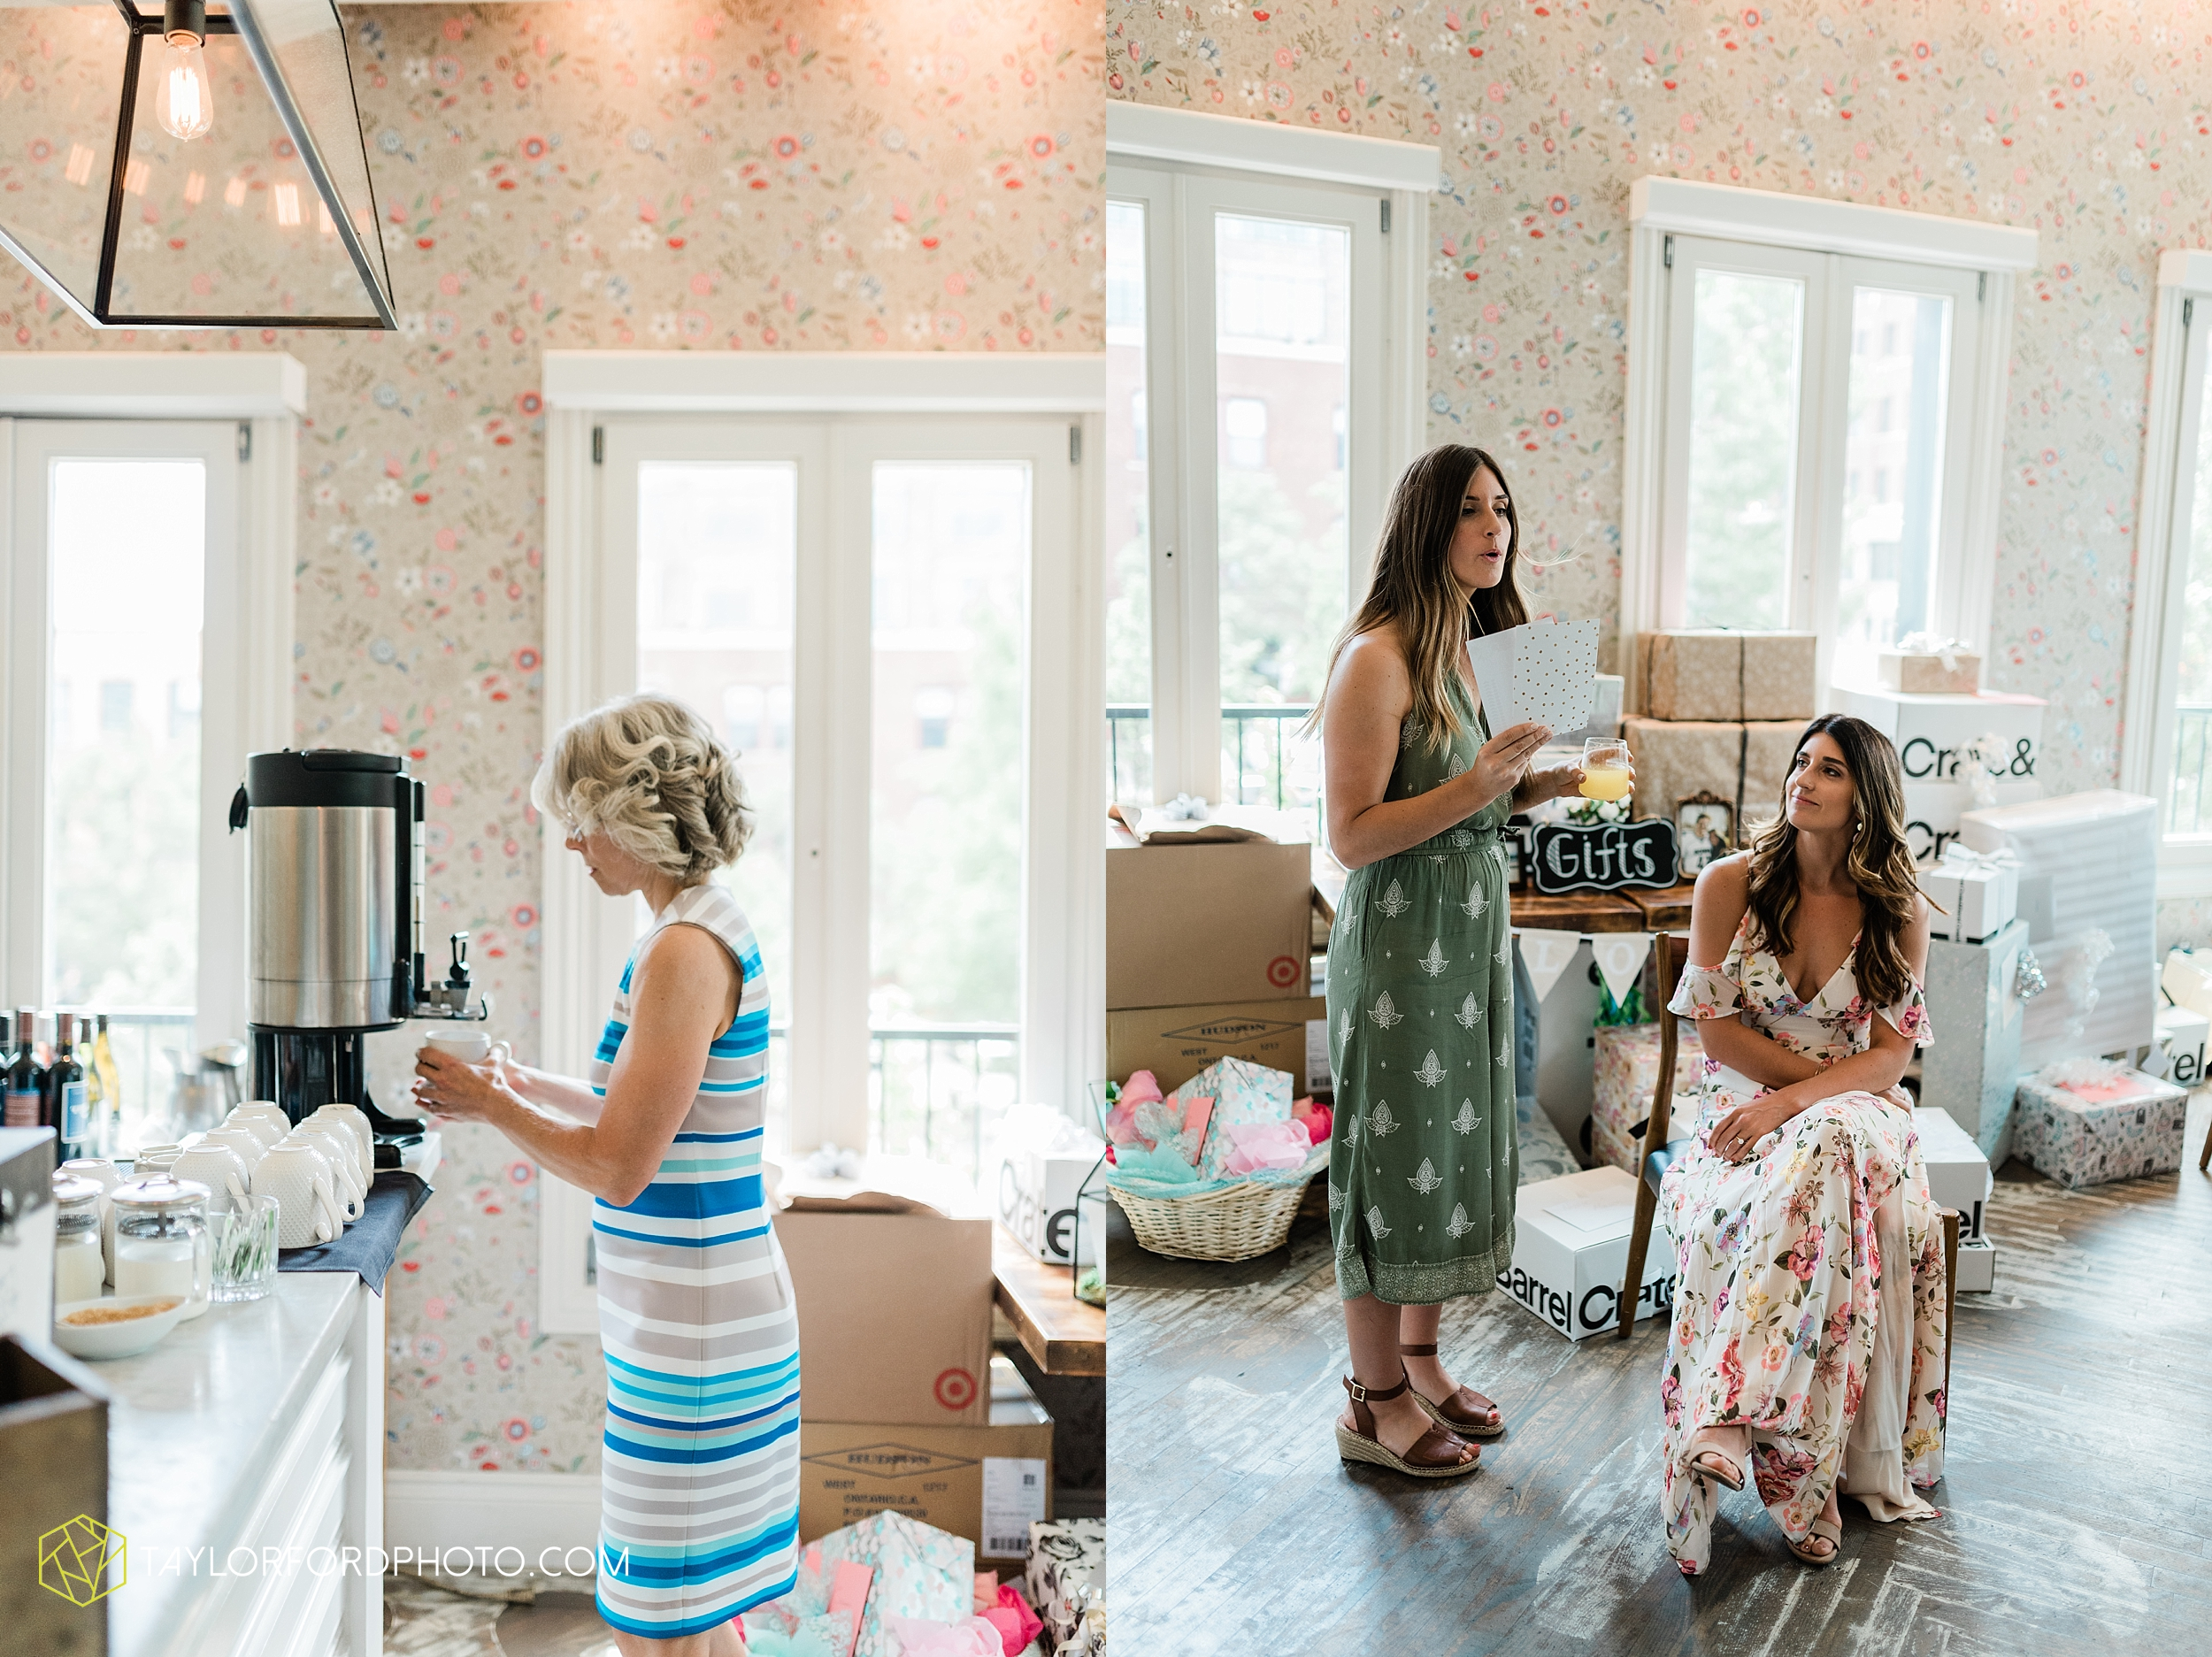 chicago-illinois-bridal-shower-little-goat-diner-west-loop-wedding-photographer-taylor-ford-photographer_8842.jpg